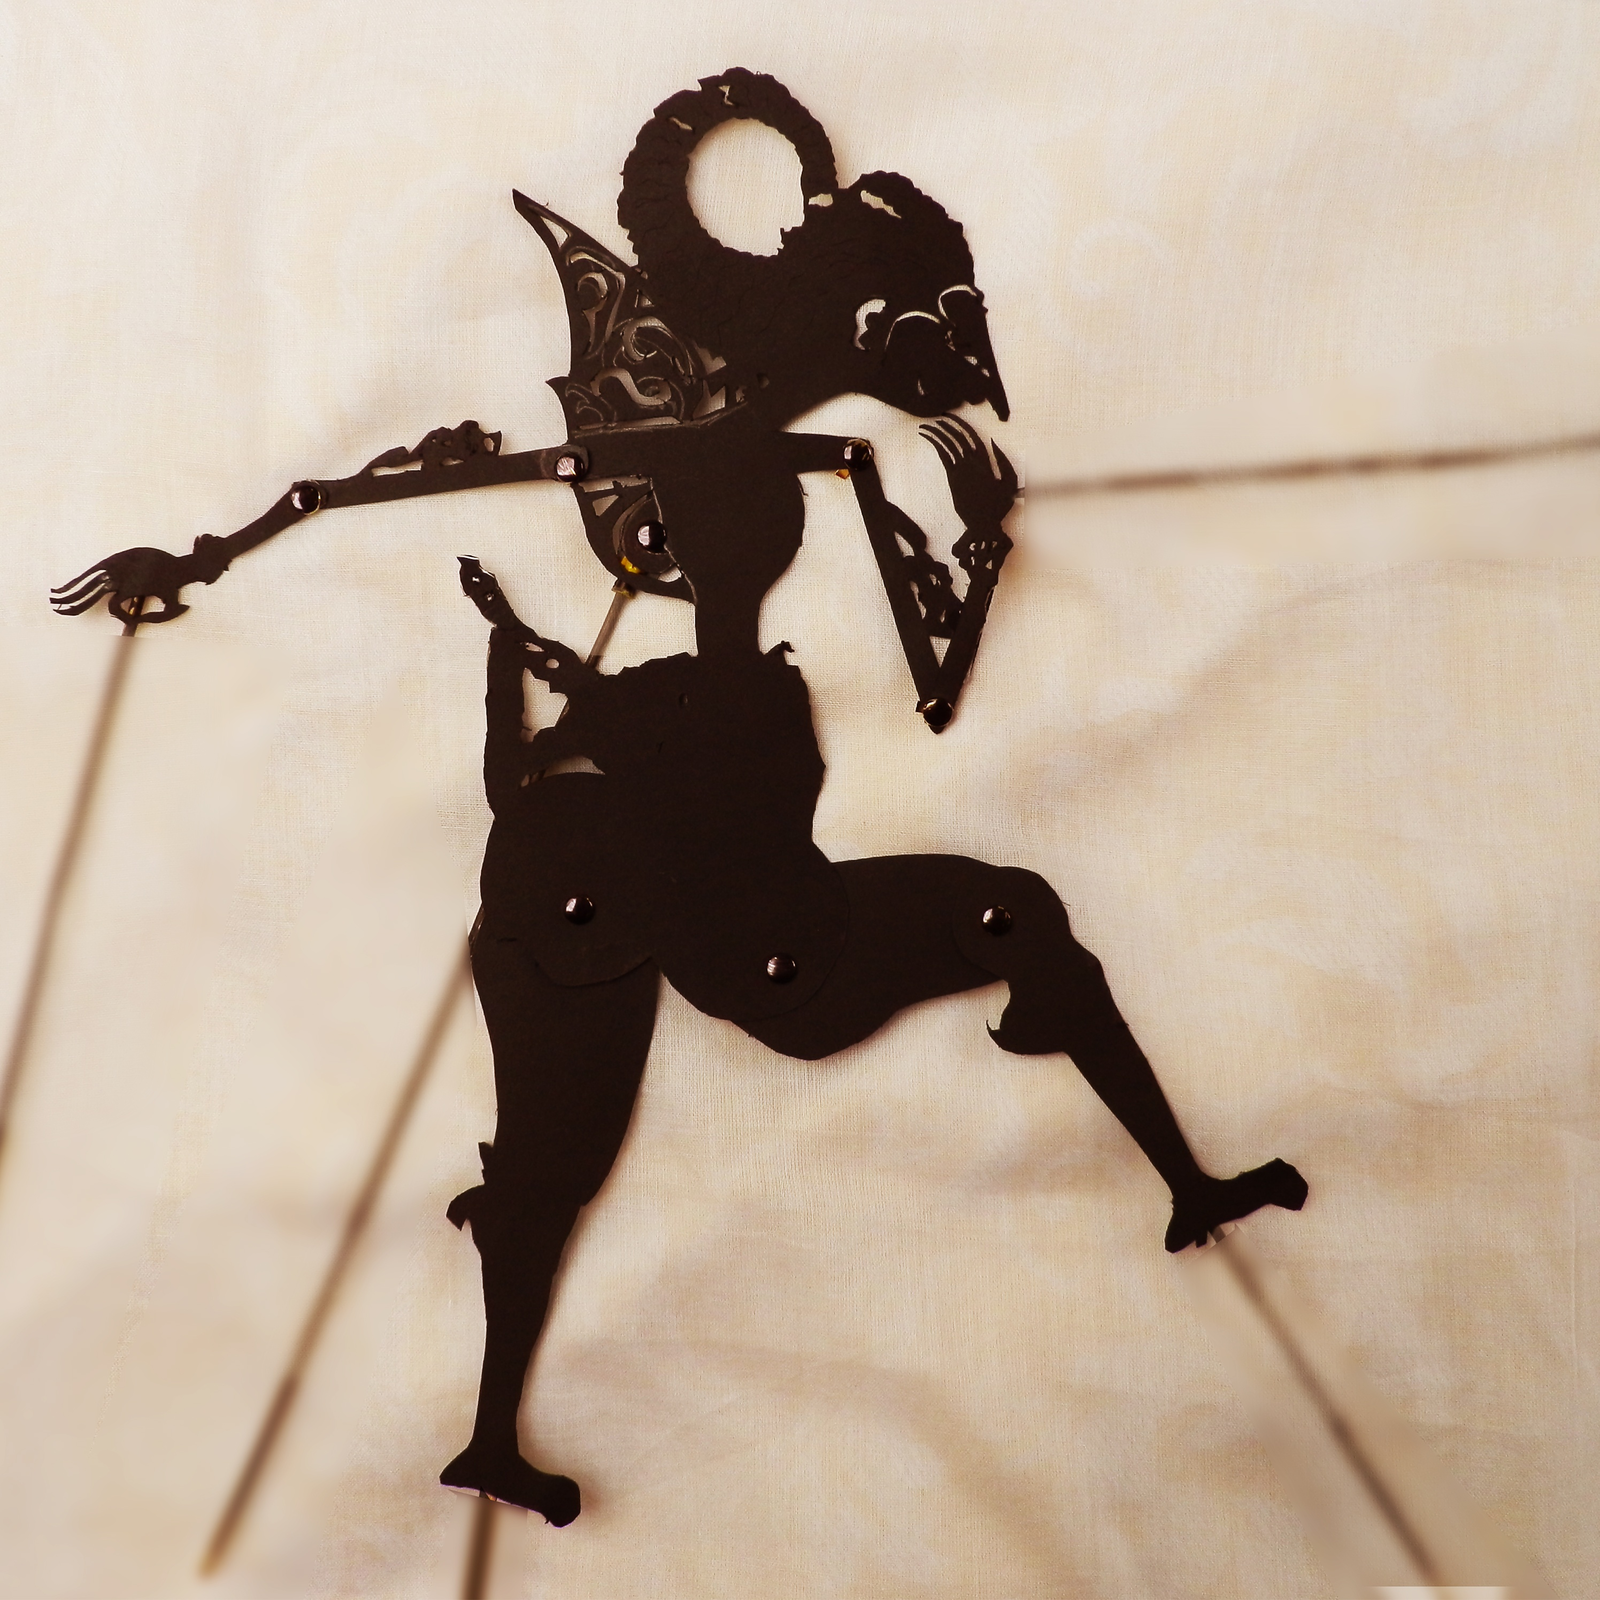 Painting With Light-Shadow Puppets